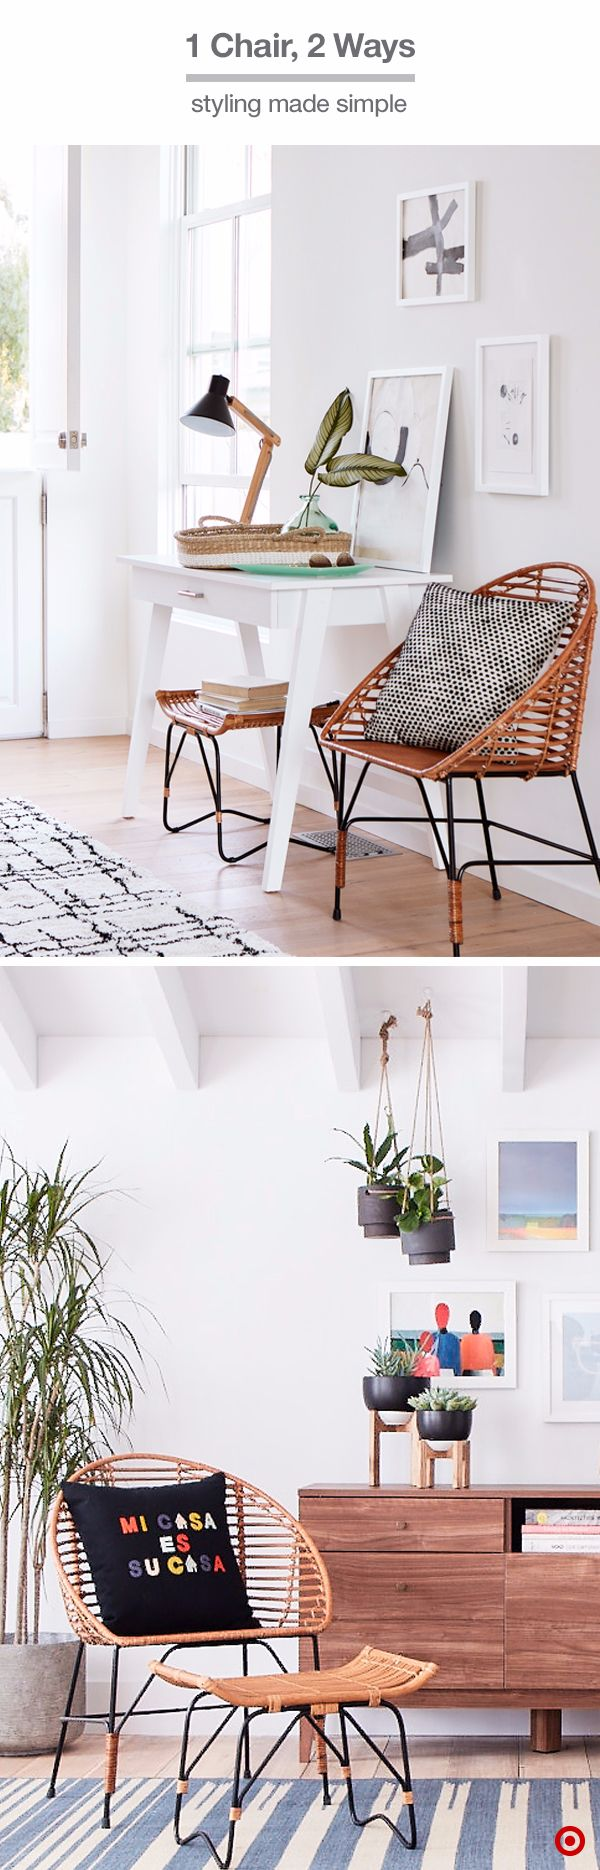 Adding This Sculptural Rattan Chair To A Room Will Create A Stylish Impact  Thatu0027s Still Relaxed